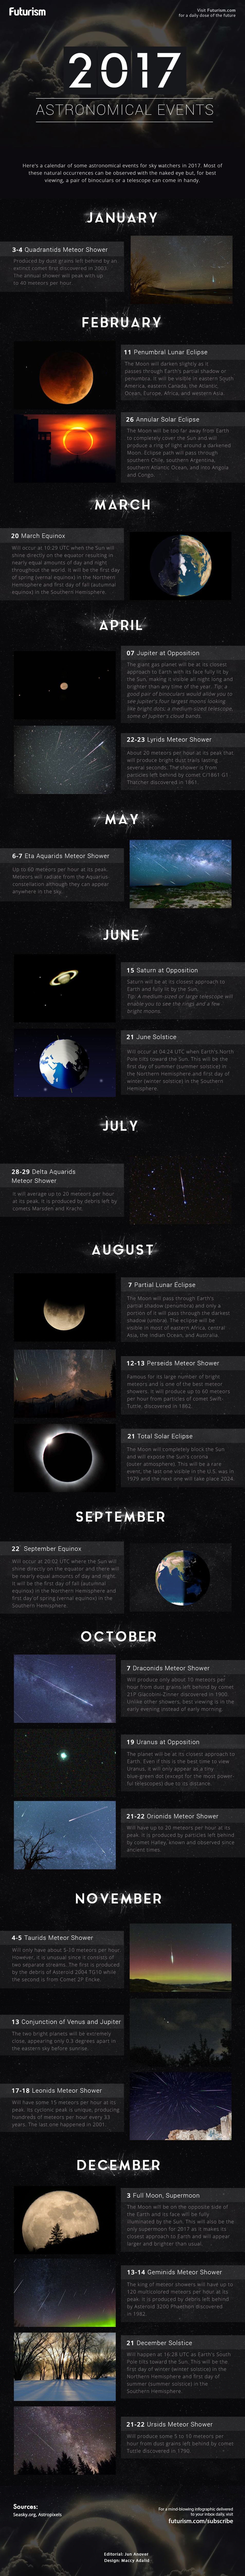 2017-Astronomical-events_v2.jpg